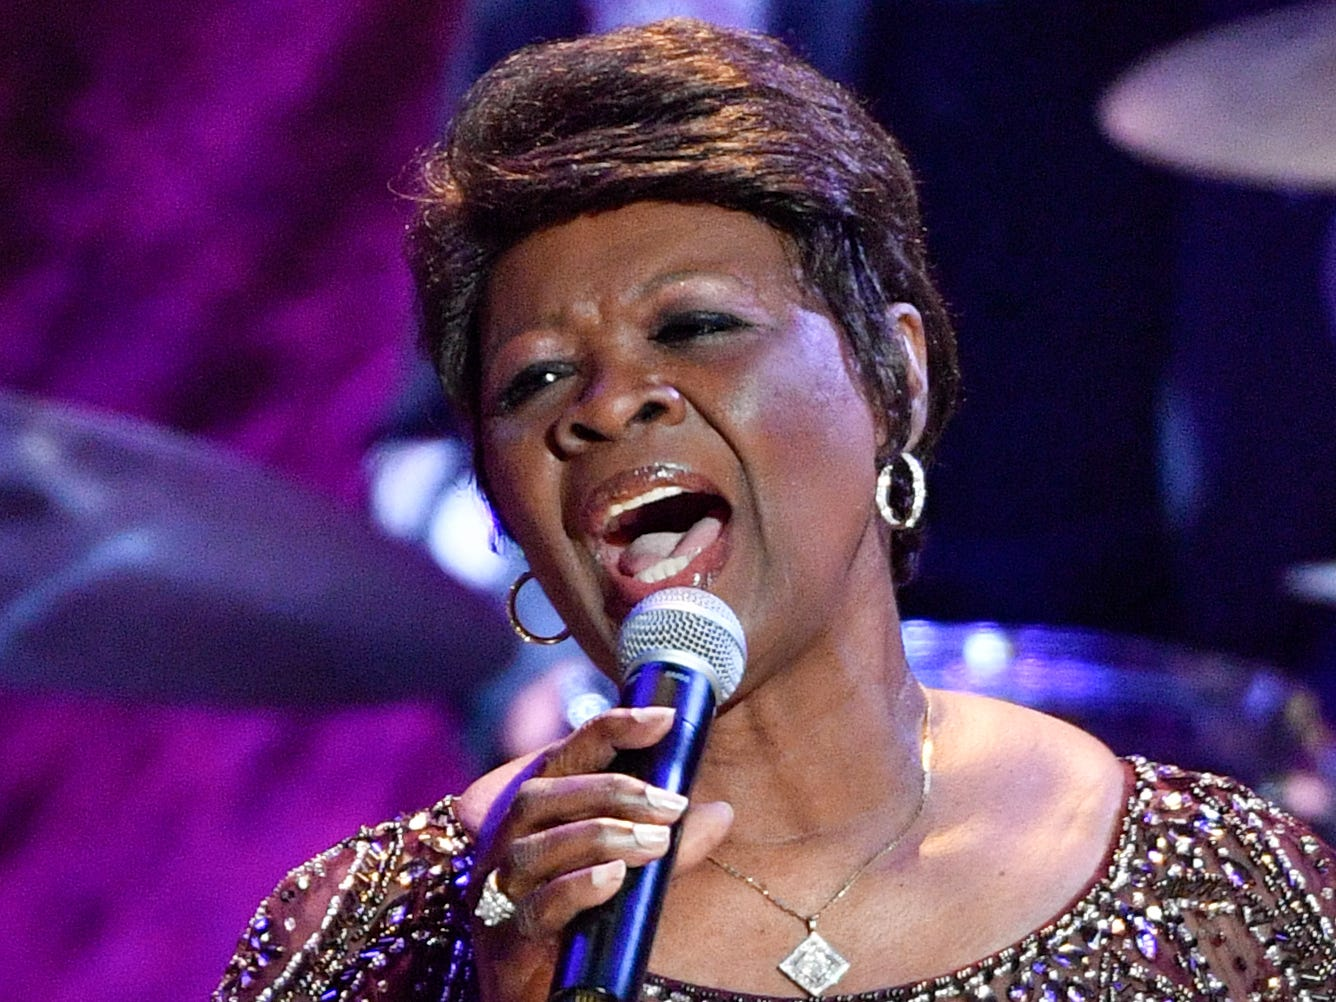 Irma Thomas performs during the 2018 Americana Honors and Awards show at the Ryman Auditorium in Nashville, Tenn., Wednesday, Sept. 12, 2018.